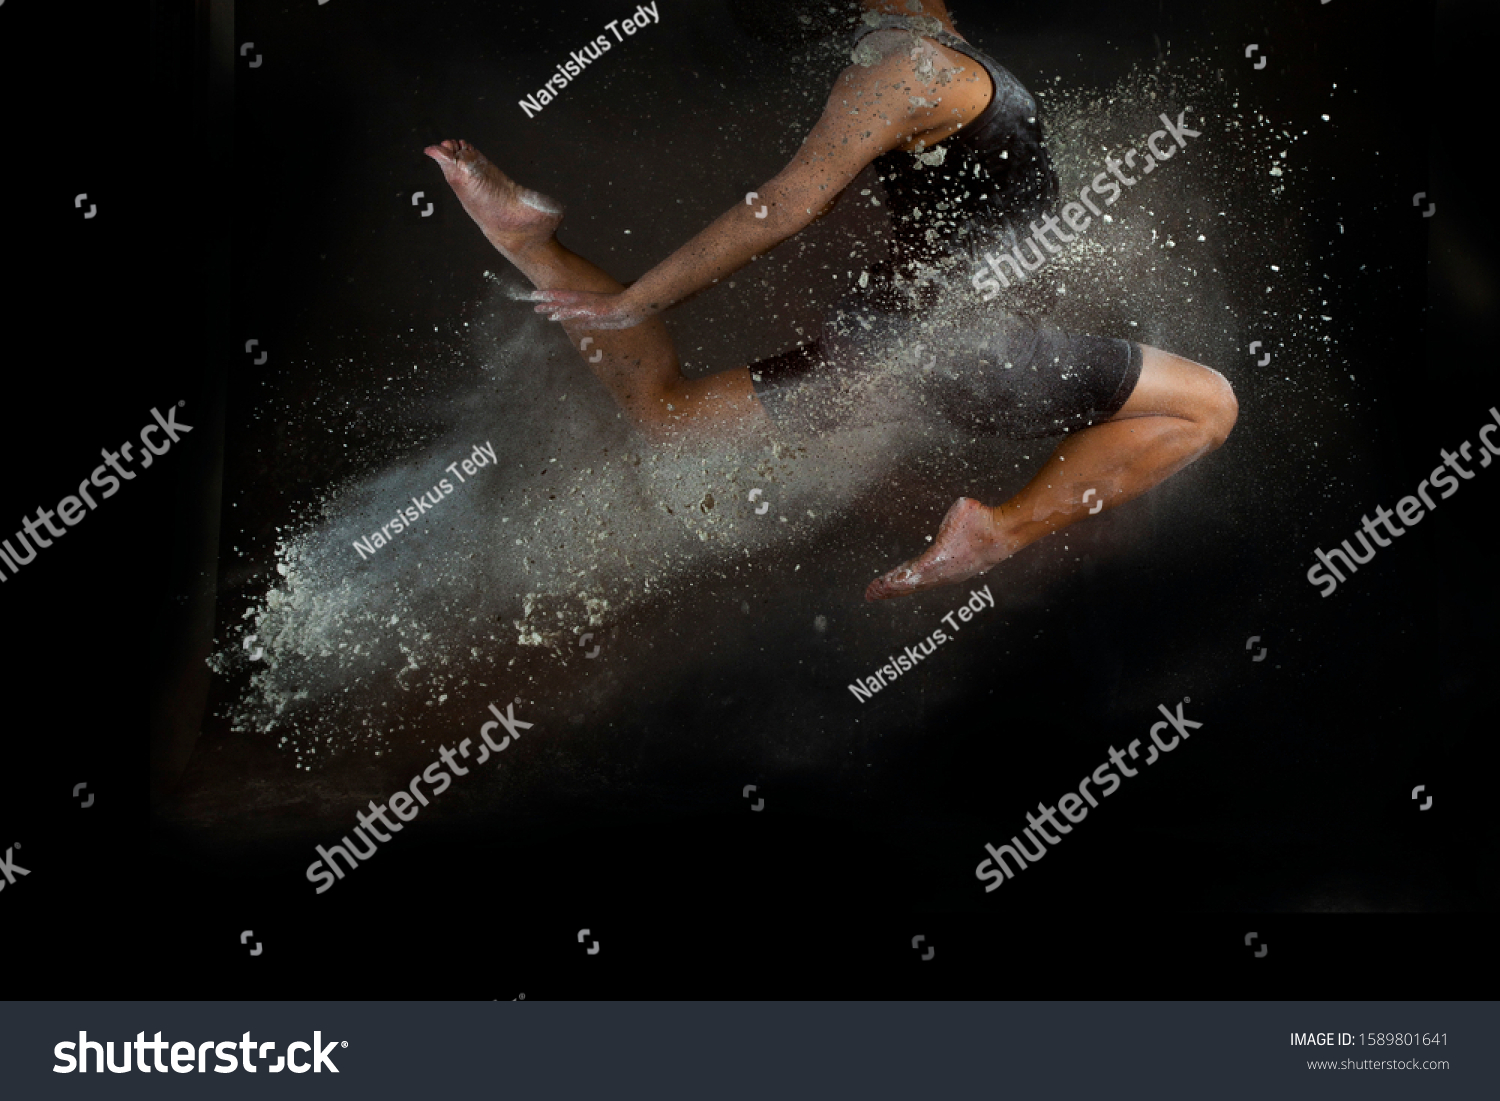 woman do gymnastics movements with splashes of powder  #1589801641